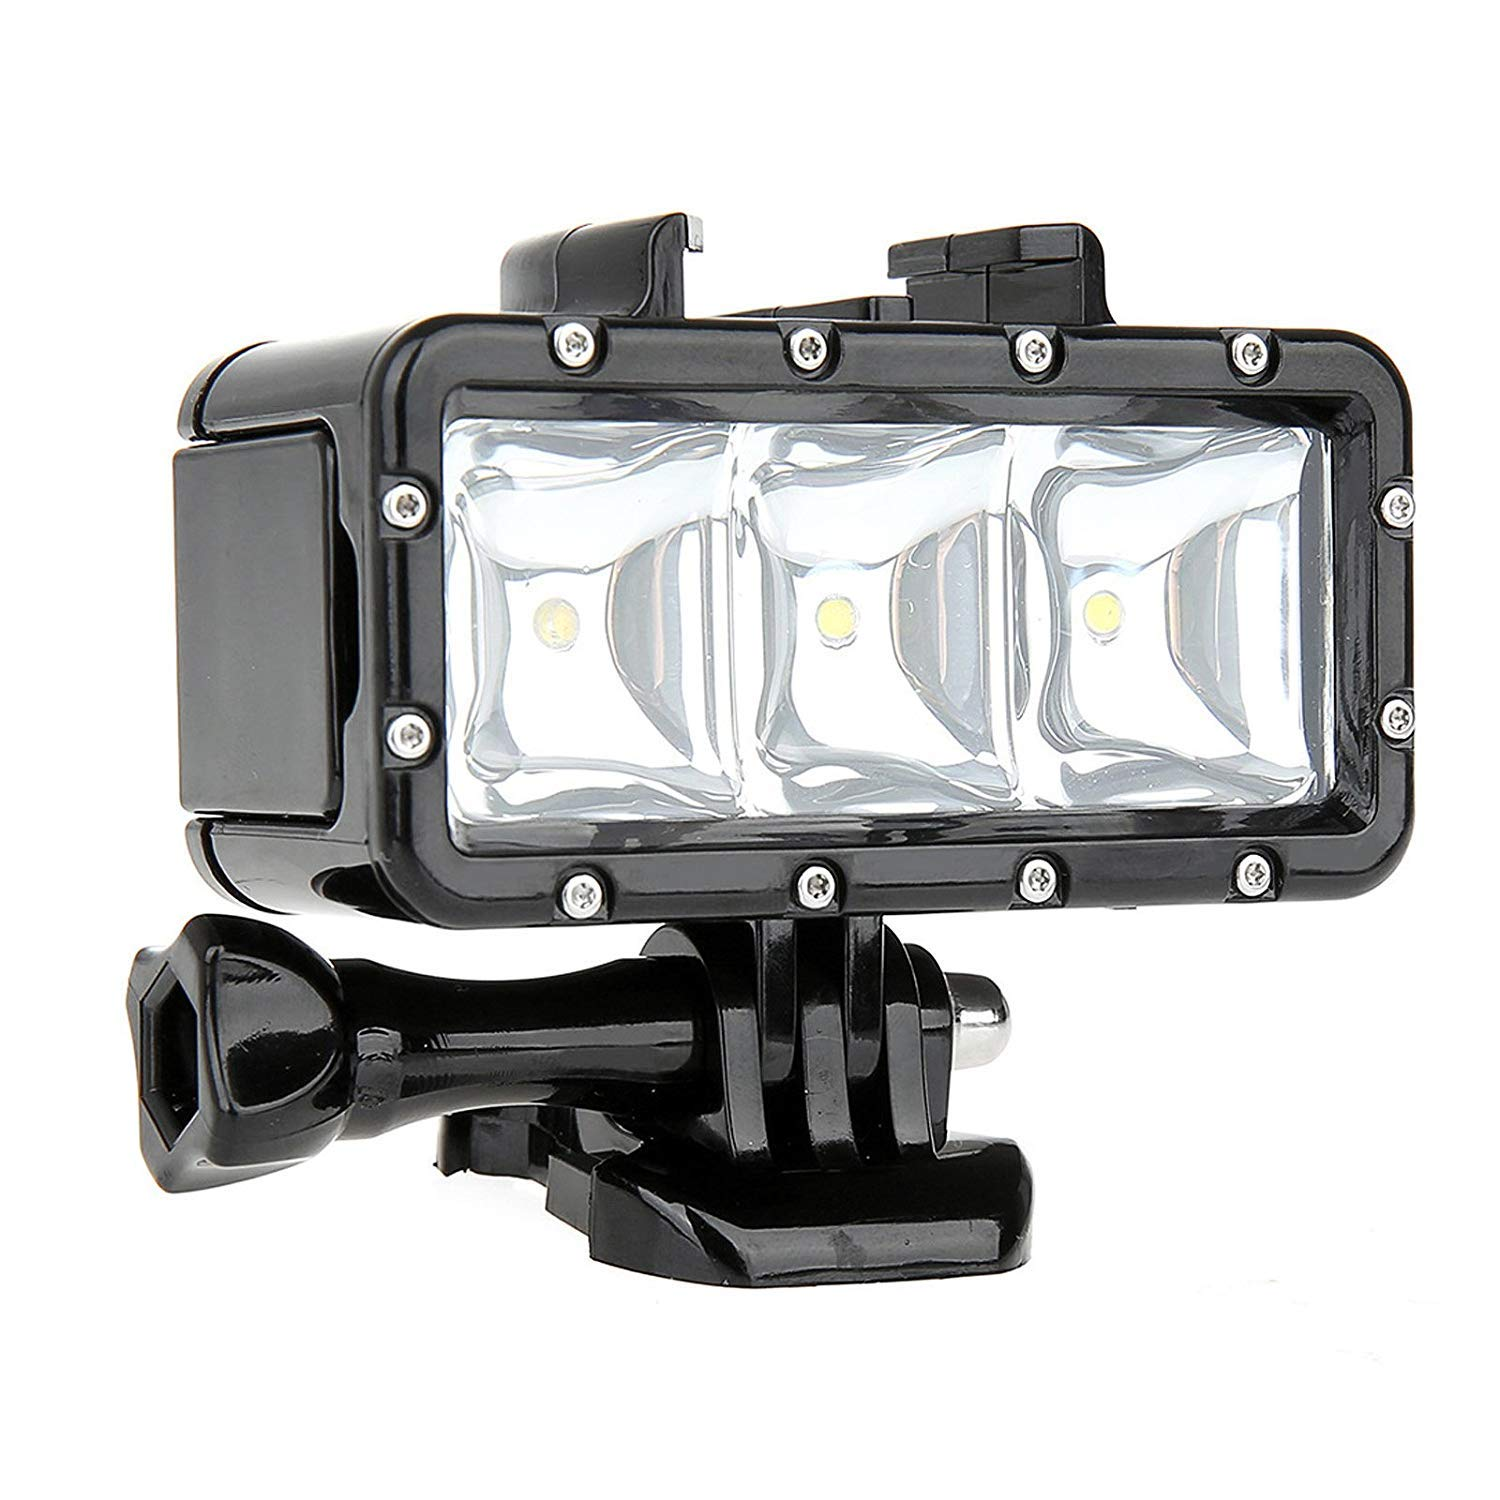 SHOOT Waterproof 30m Diving Light High Power Dimmable LED Underwater Fill Light for GoPro Hero 7//6//5//5S//4//4S//3+,Campark AKASO DBPOWER Crosstour Camera with 1200mAh Built-in Rechargeable Battery